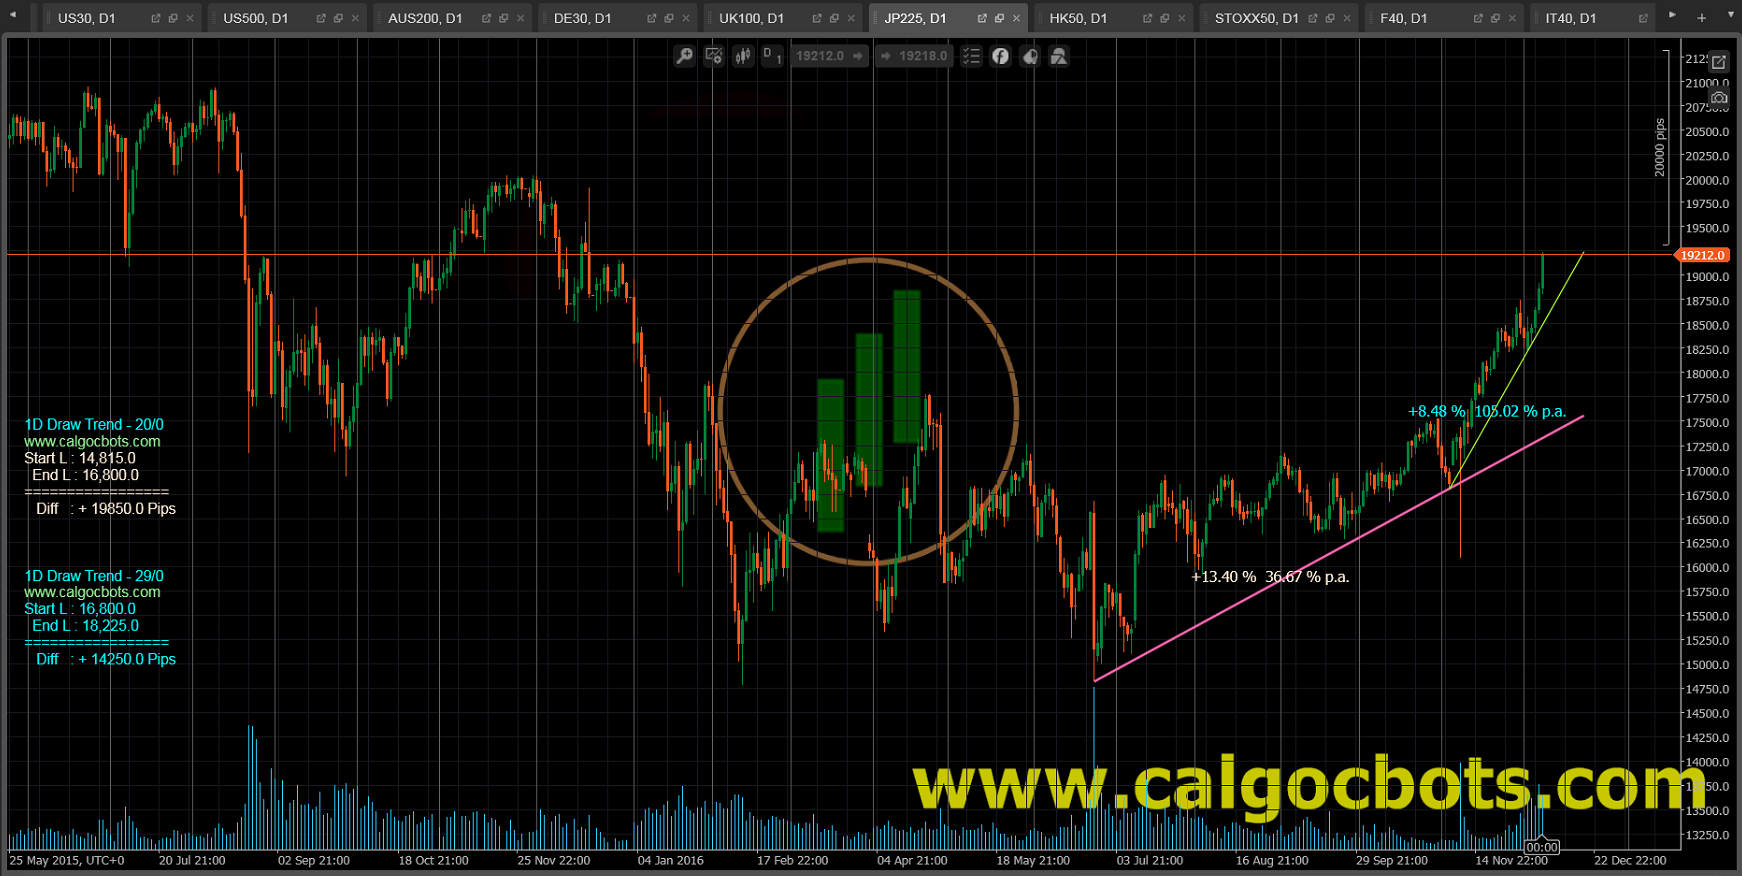 1D Draw Trend Color - cAlgo and cTrader Indicator - Nikkei 225 Index Daily Chart - 001